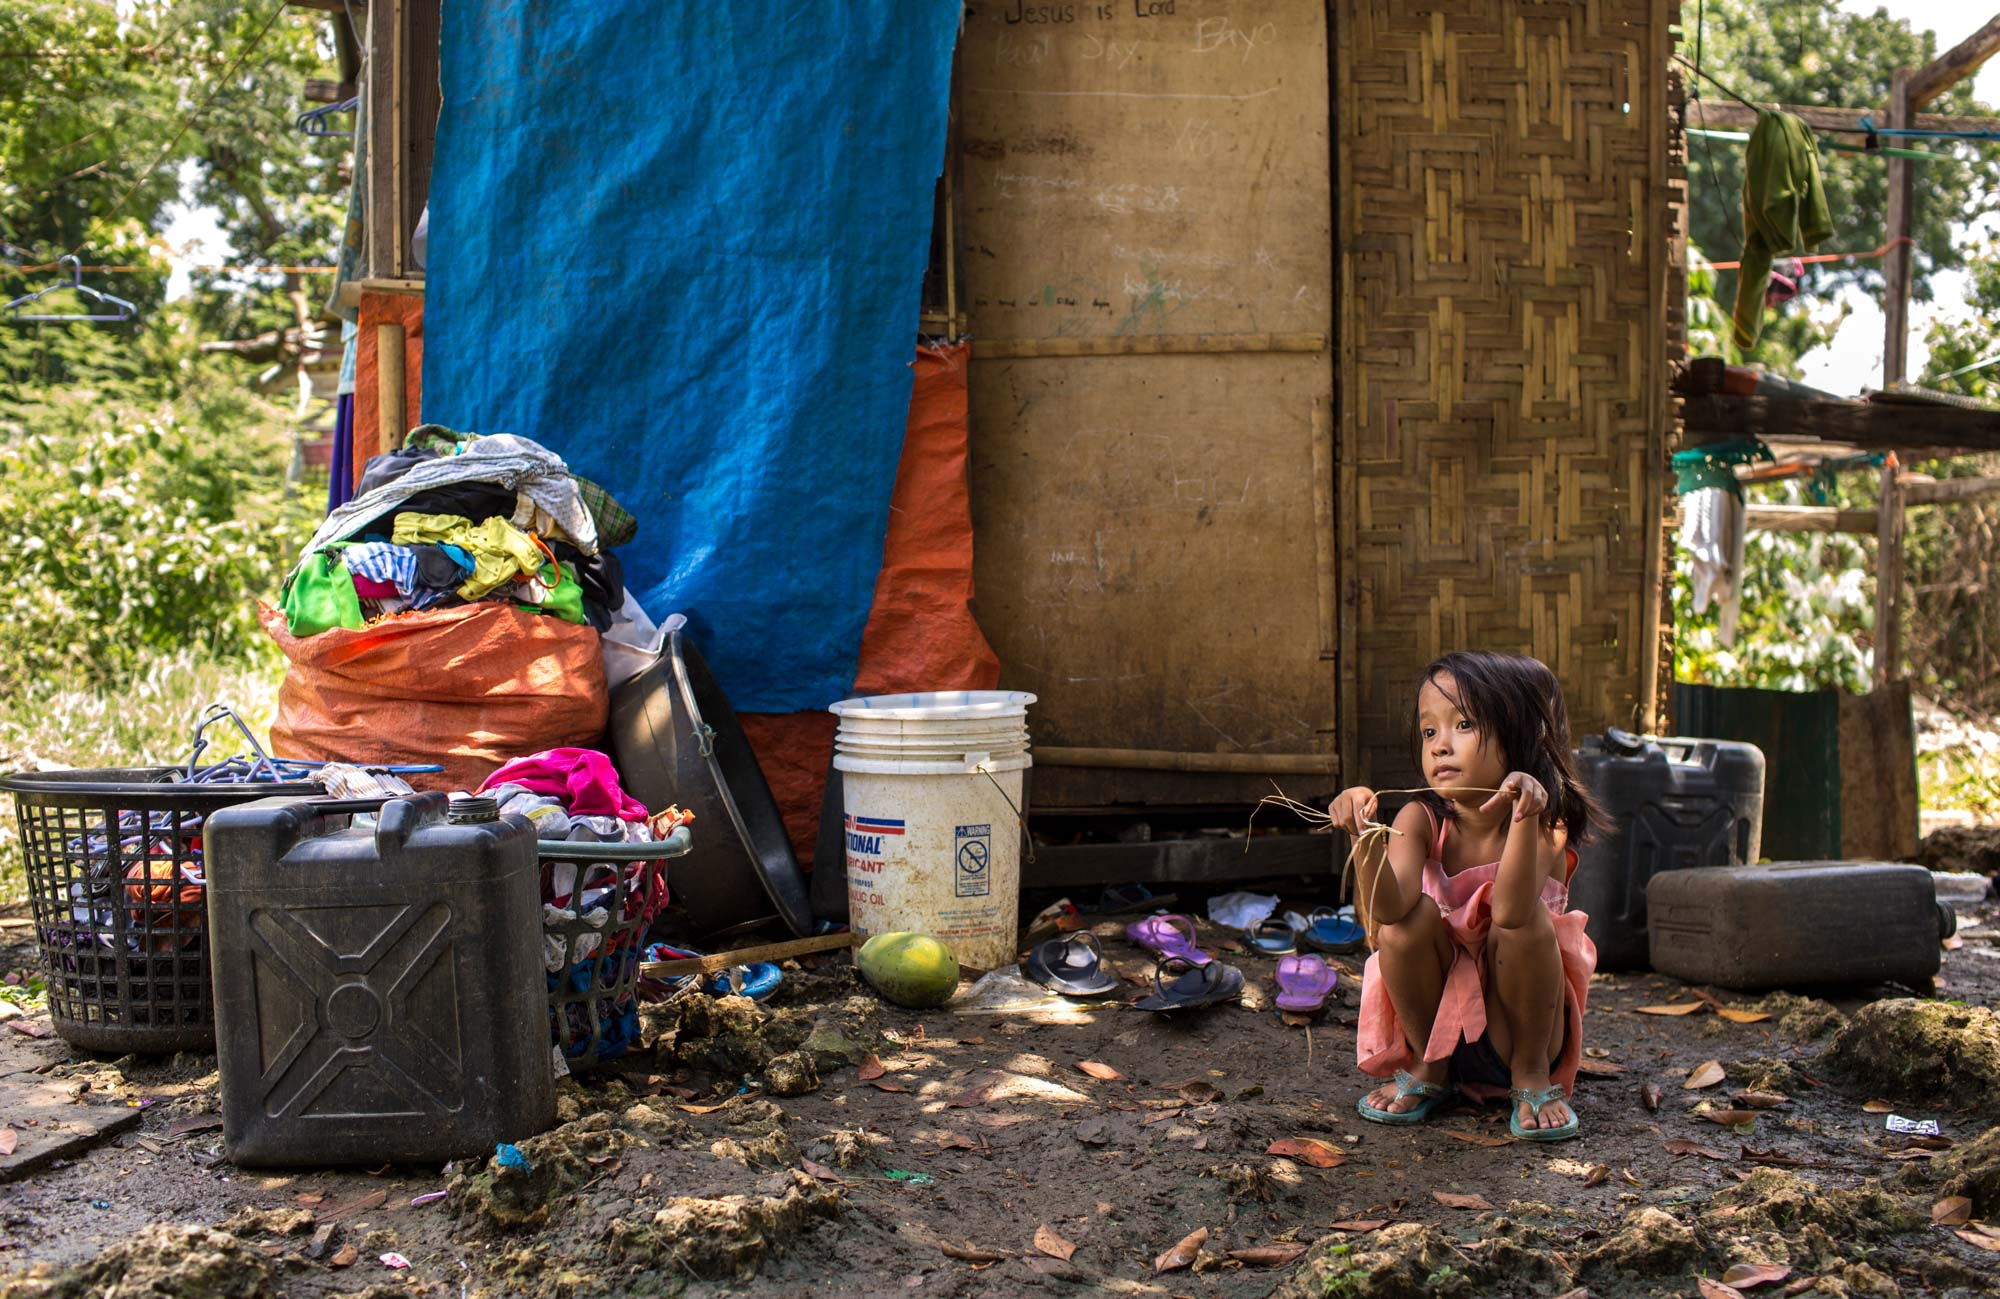 Poverty and inequality in the Philippines remain a complex challenge. The country has lost its once great wealth due to unemployment issues and unchecked population growth and is now considered a third world country.  Approximately 21% of Filipinos live below the national poverty line, earning less than $1,982 per year. This equates to 26 million Filipinos who are poor, with 12 million lacking the means to feed themselves. Over four million families are living in unsafe, unsanitary and unsustainable conditions. 7.6% are living in extreme poverty and 10.5% are considered food poor. For every 1,000 babies born in the Philippines, 22 die before their first birthday. In comparison, the rate for Australia is 3 per 1000 babies born.  The rich get richer and the poor get poorer due to the inequality in income distribution and a high rate of corruption amongst people in power. A lack of quality education and lack of jobs are also a large factor in poverty. Overpopulation also contributes hugely, with the majority Catholic country doing little family planning, meaning more mouths to feed on low incomes and less jobs. Child labour instead of attending school being another one of the effects. Another flow on effect is poor health due to sub standard living conditions and not being able to fulfil dietary requirements.  This series is a documentation of some of the residents of the Philippines. I spent time with the  Energia Kids Project ; a great group of friends with no funding that are based in Australia and travel regularly to the Philippines and have been feeding and helping Filipinos for the past 3 years. I made these photographs at a local school, a squatters community and an orphanage, to help tell the story of the people that they help.  The scary part is that the people involved in this project were randomly selected. I didn't chose people based on prior knowledge of their situation. Which leaves you to think what other stories are untold if these are just 16 out of th